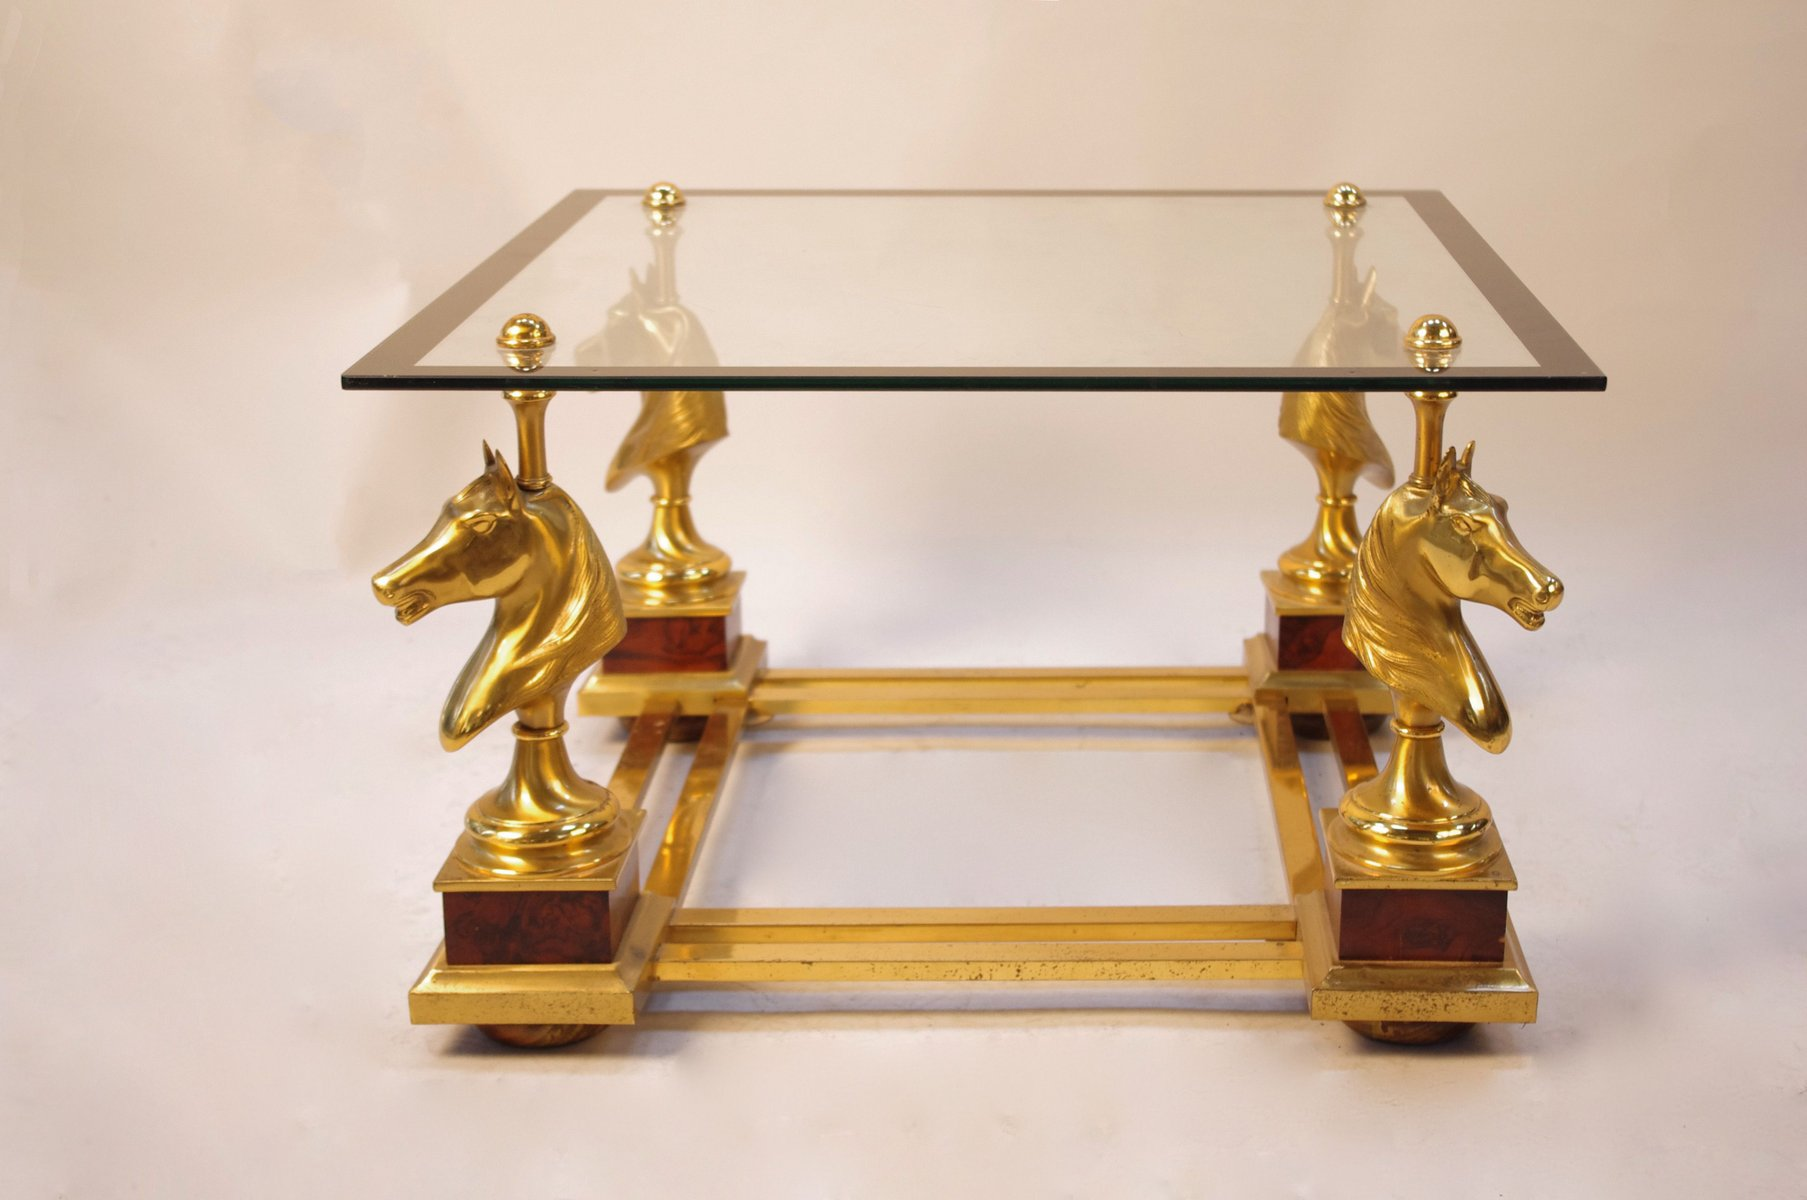 Vintage Gilt Metal And Glass Coffee Table With 4 Horse Busts, 1970s